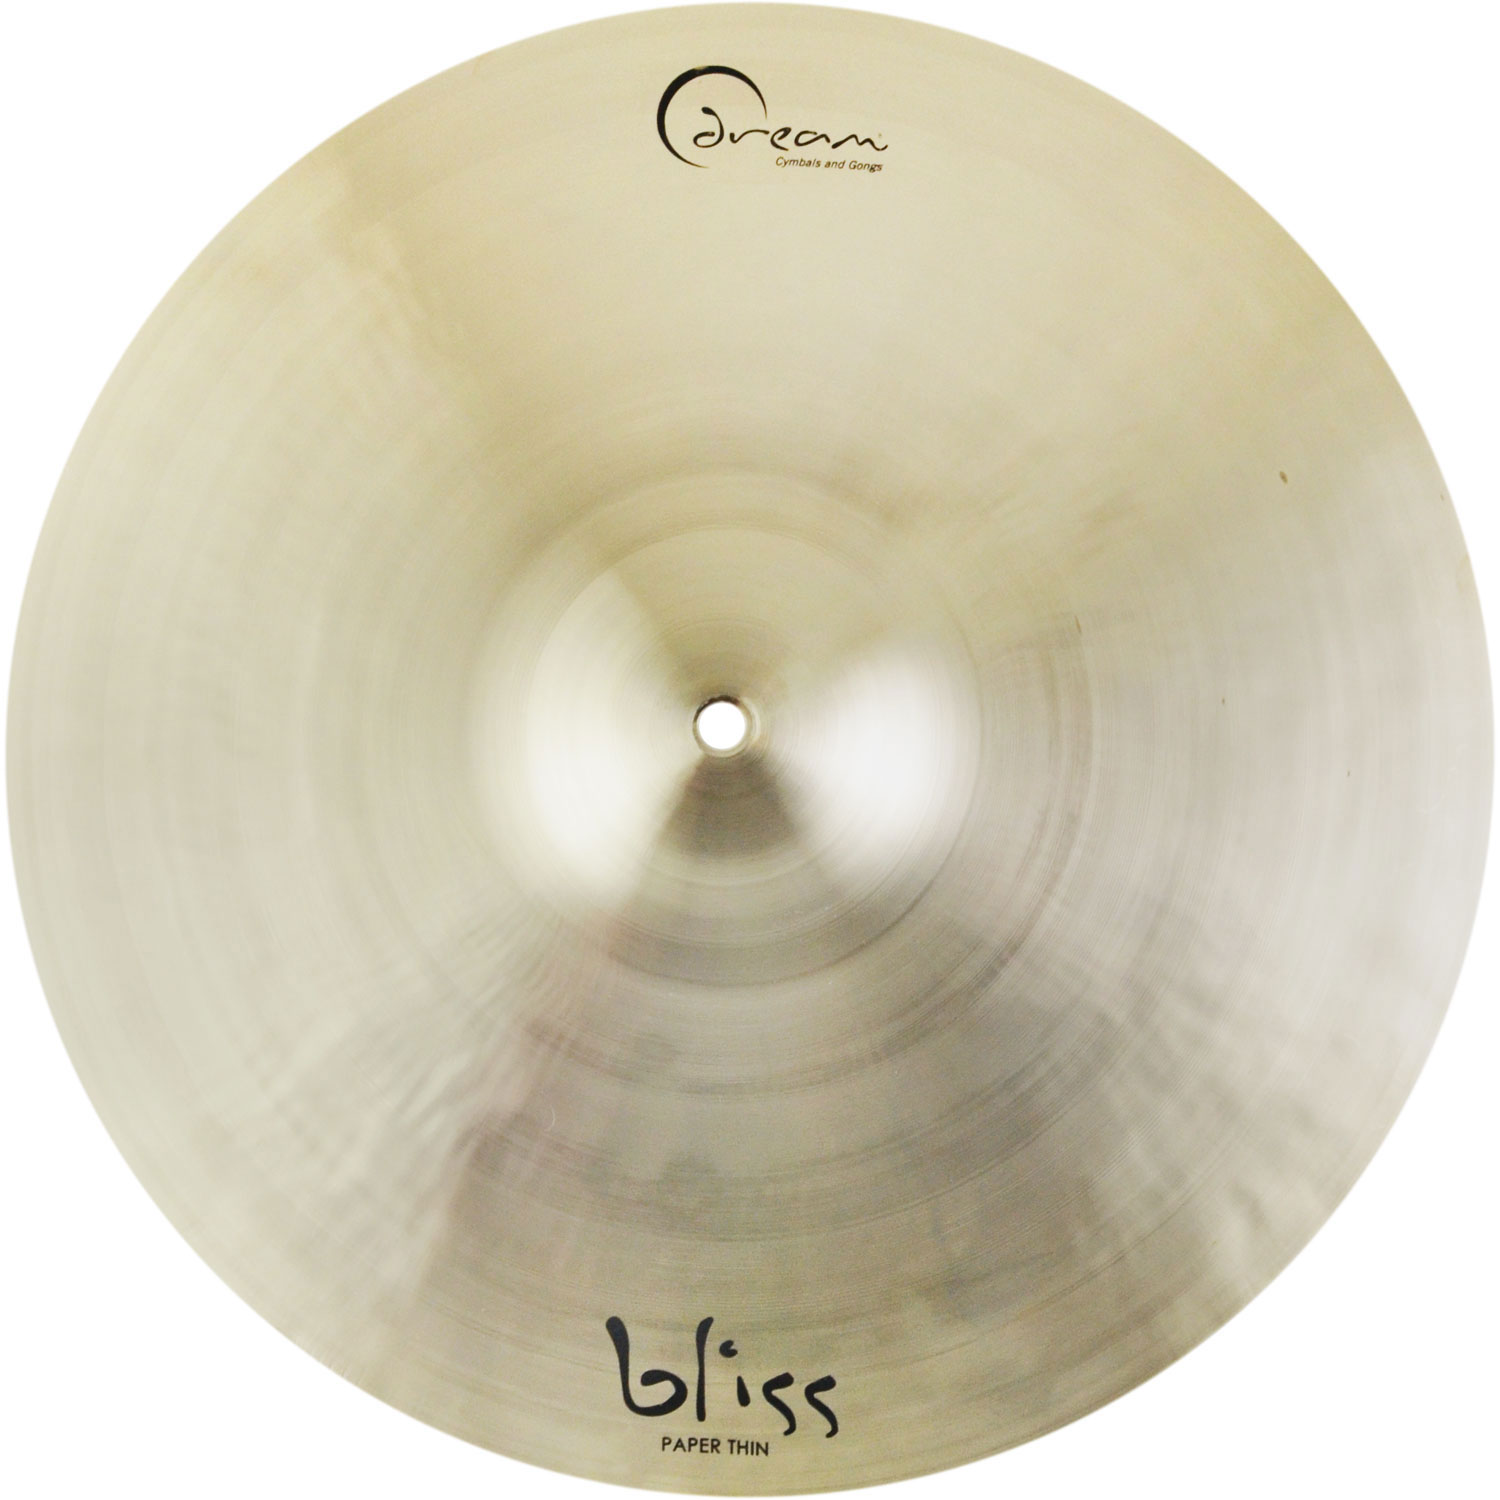 "Dream 22"" Bliss Paper Thin Crash Cymbal"